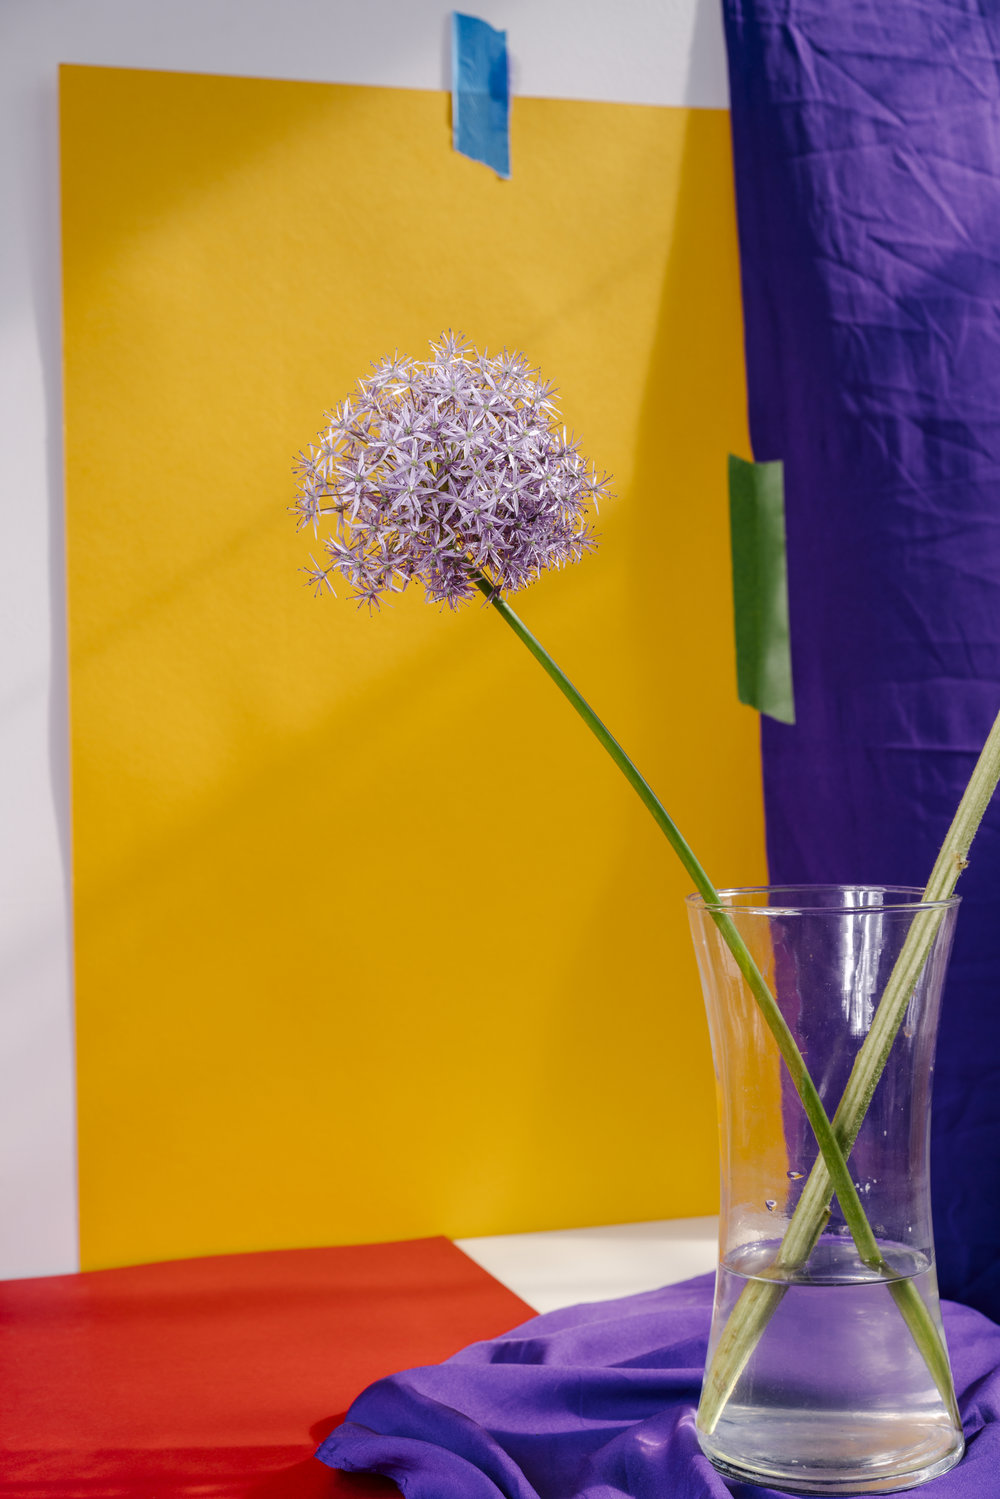 Untitled (Allium)